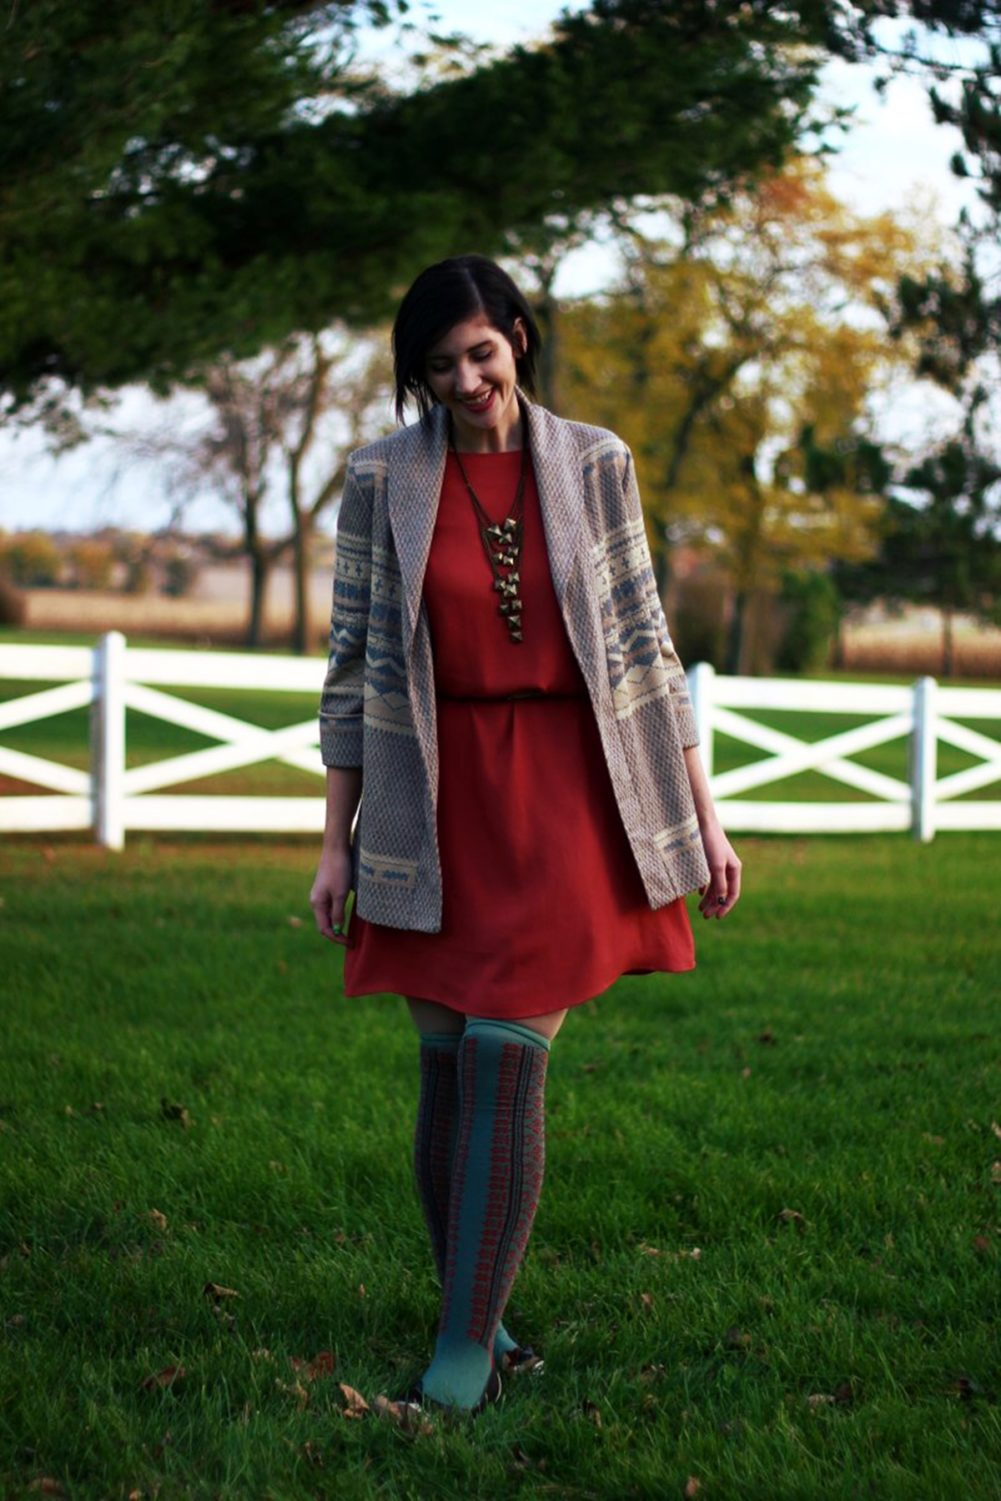 Outfit: Orange dress, beige belt, bronze necklace, patterned cardigan, otk colorful socks, brown flats